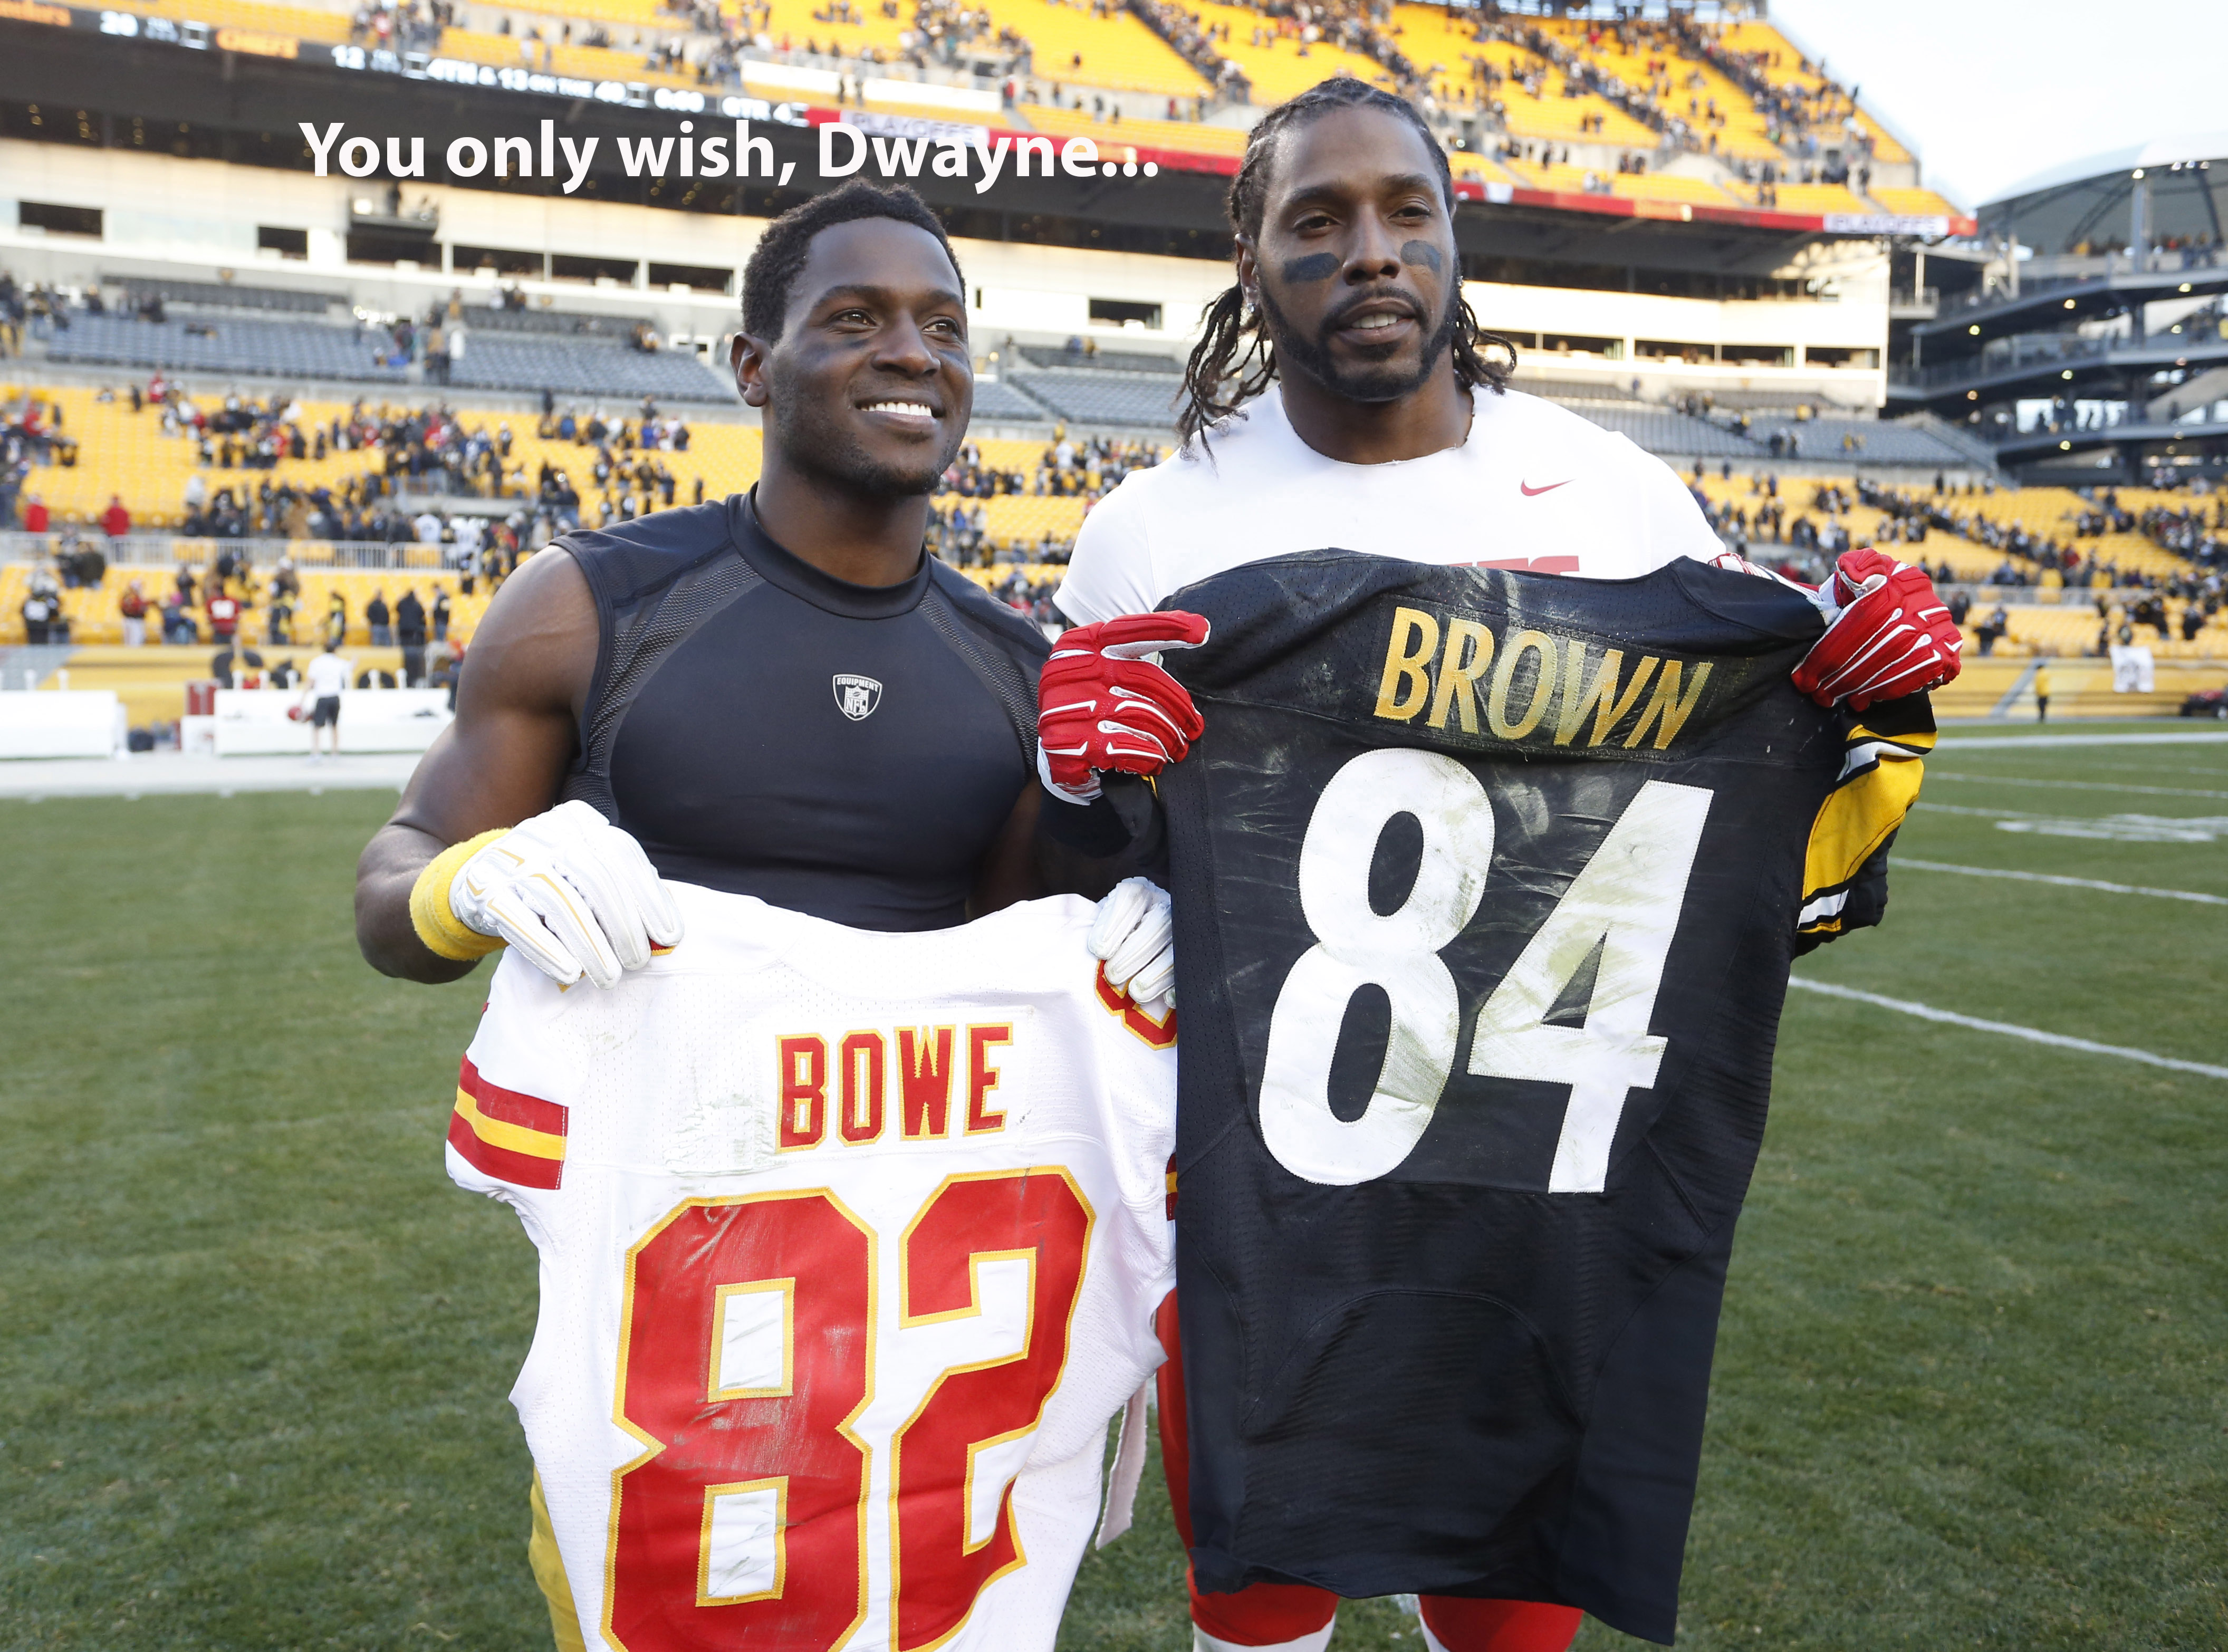 Dwayne Bowe got the better end of his jersey trade with Antonio Brown